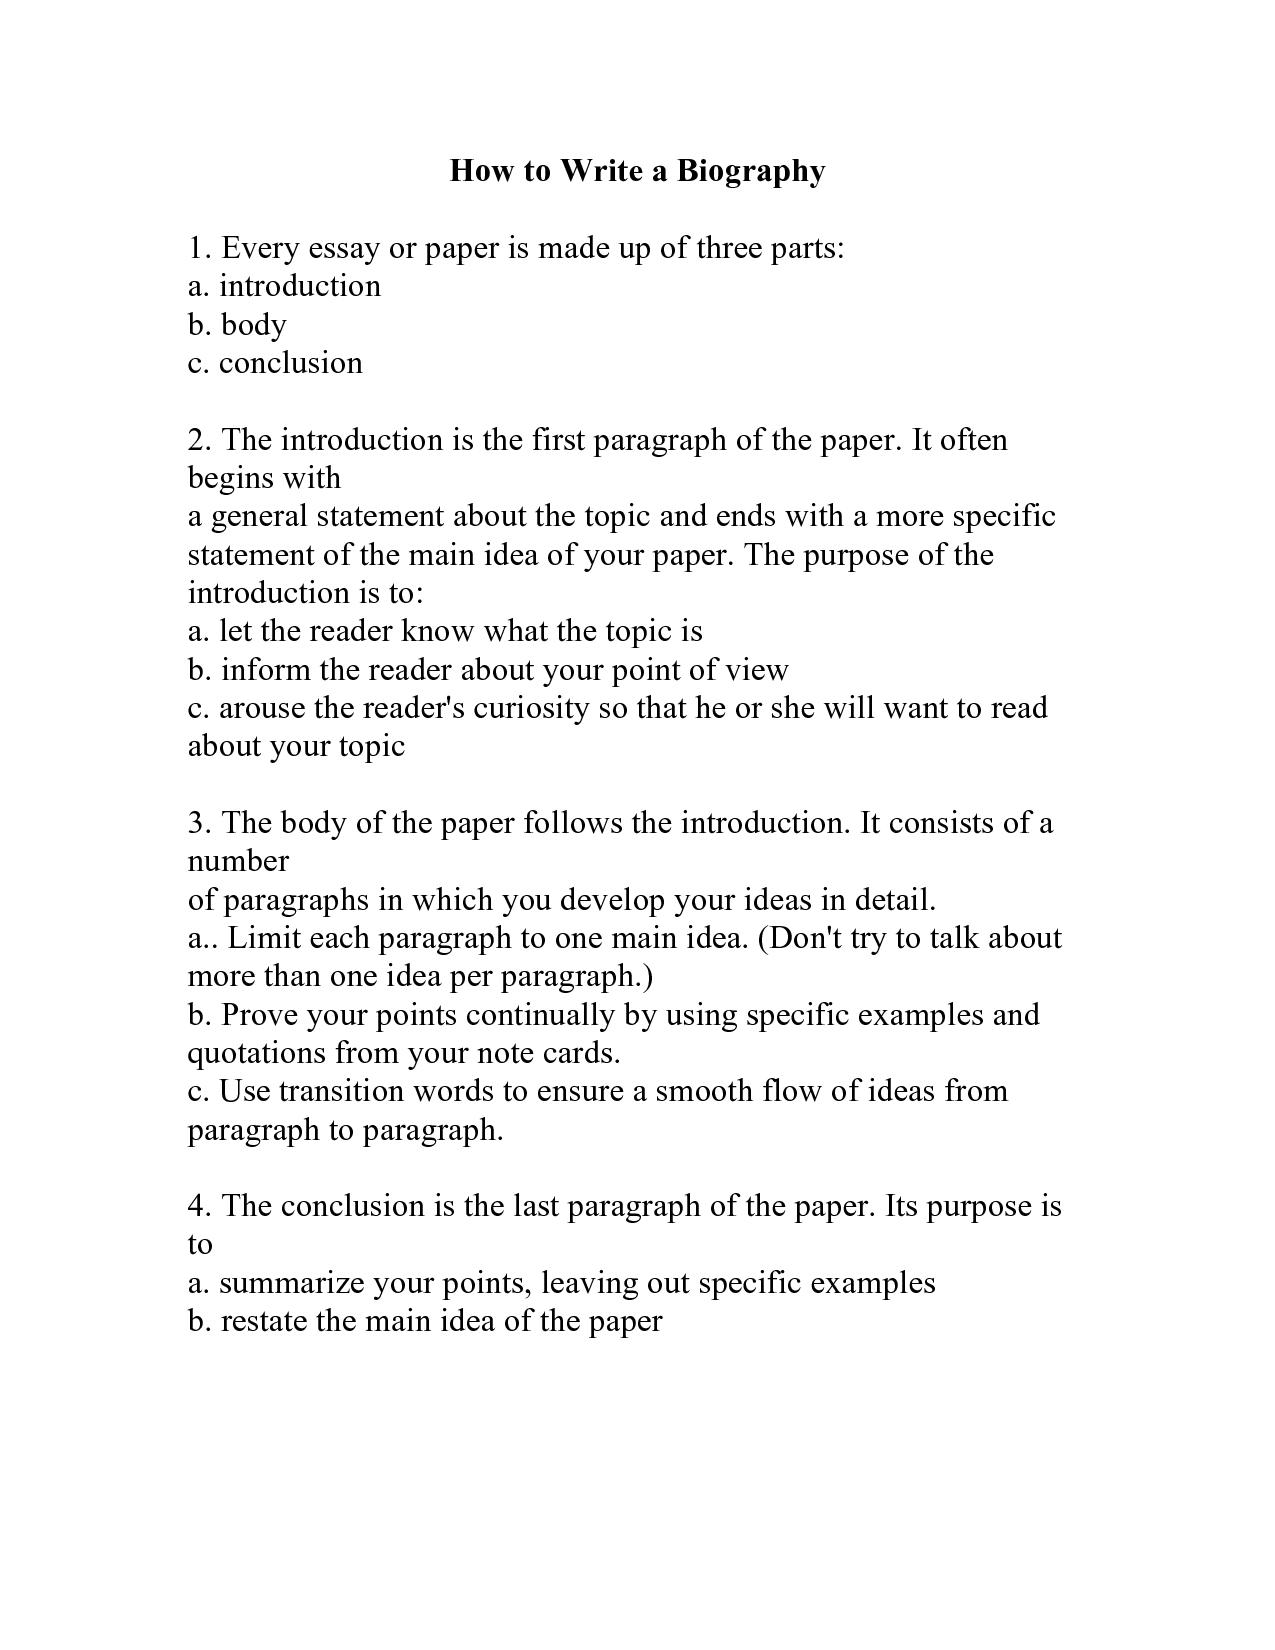 013 How To Write Good Biographical Essay Biography 87748 Incredible A Bibliography About An Author Pdf Full